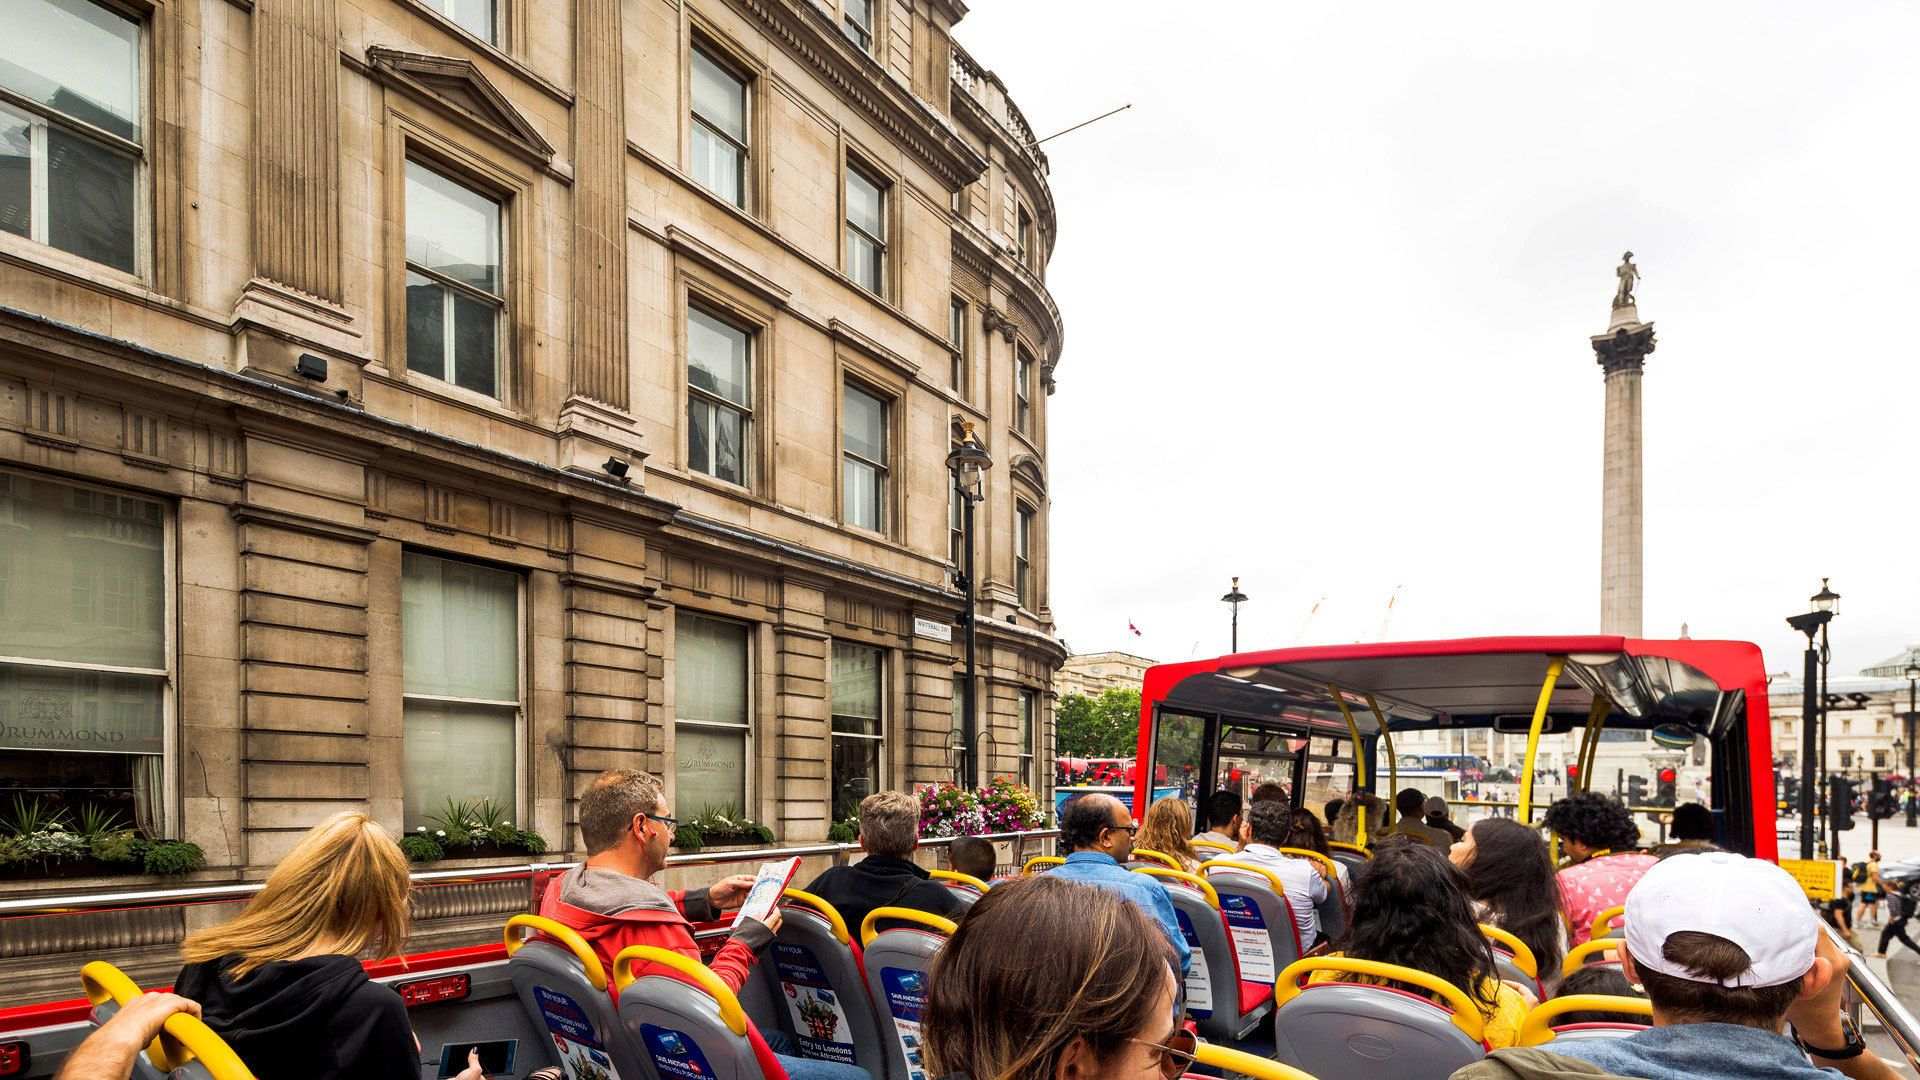 People on double decker tour bus in London